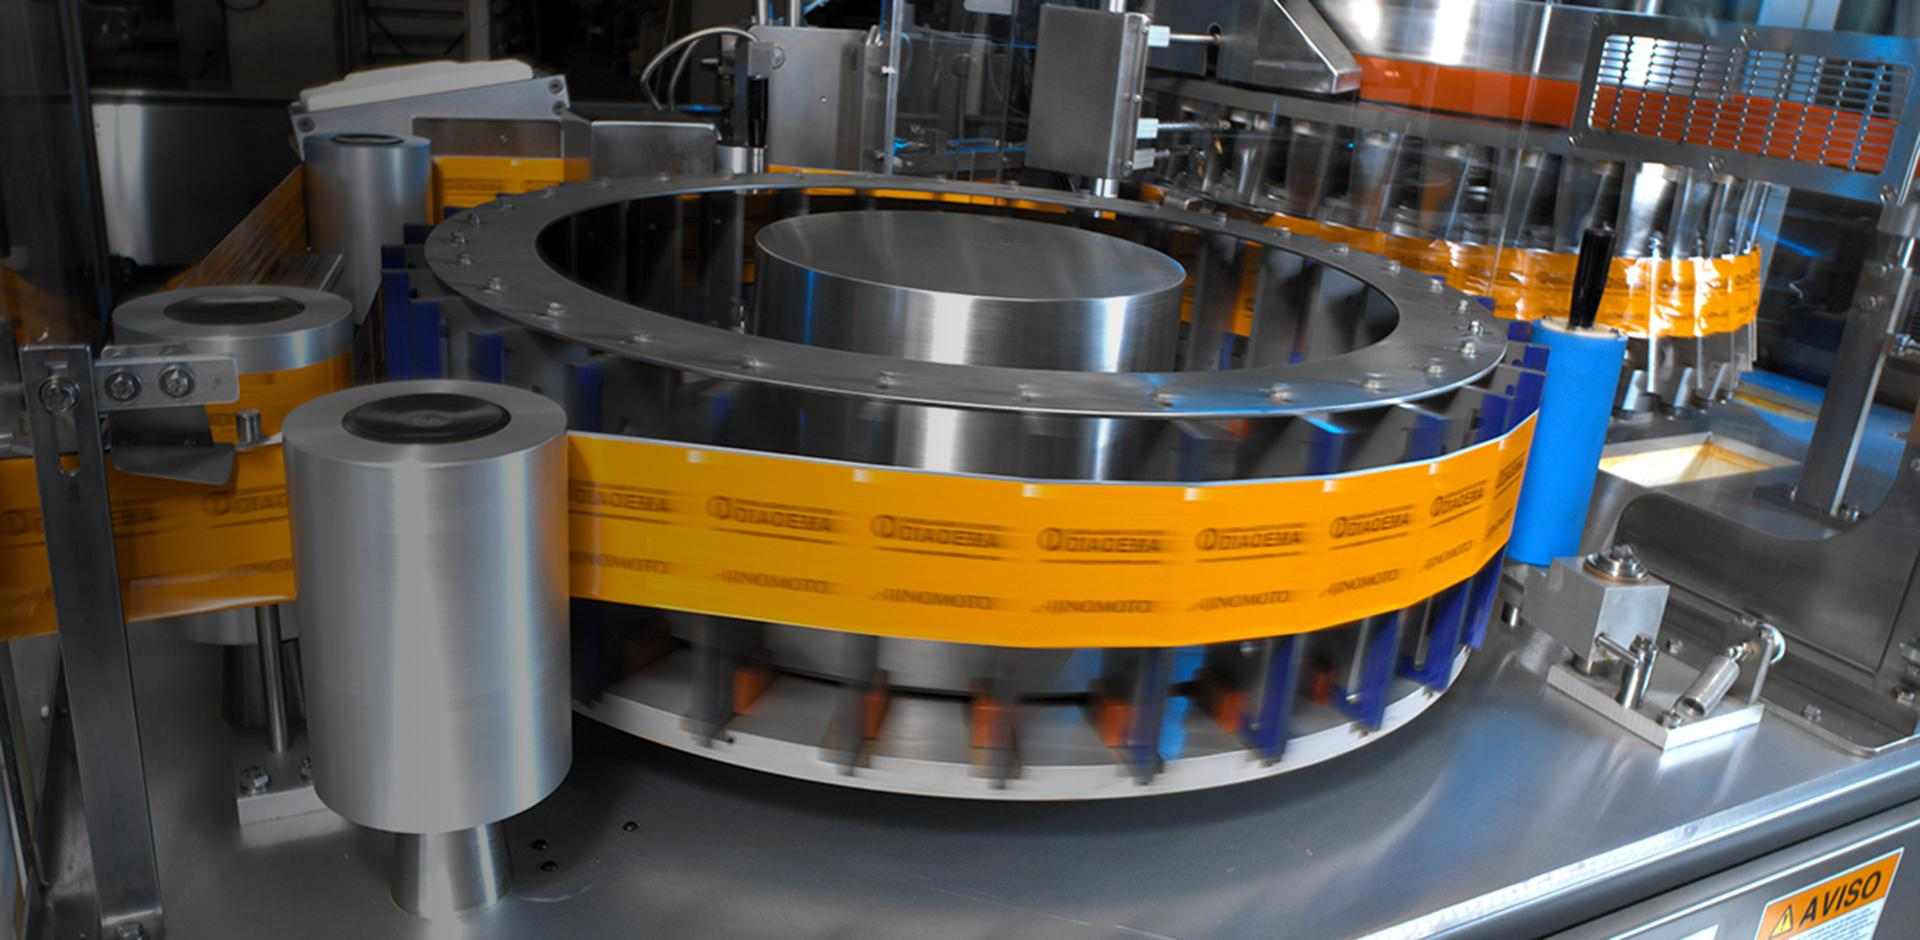 Horizontal Form Fill Seal Equipment